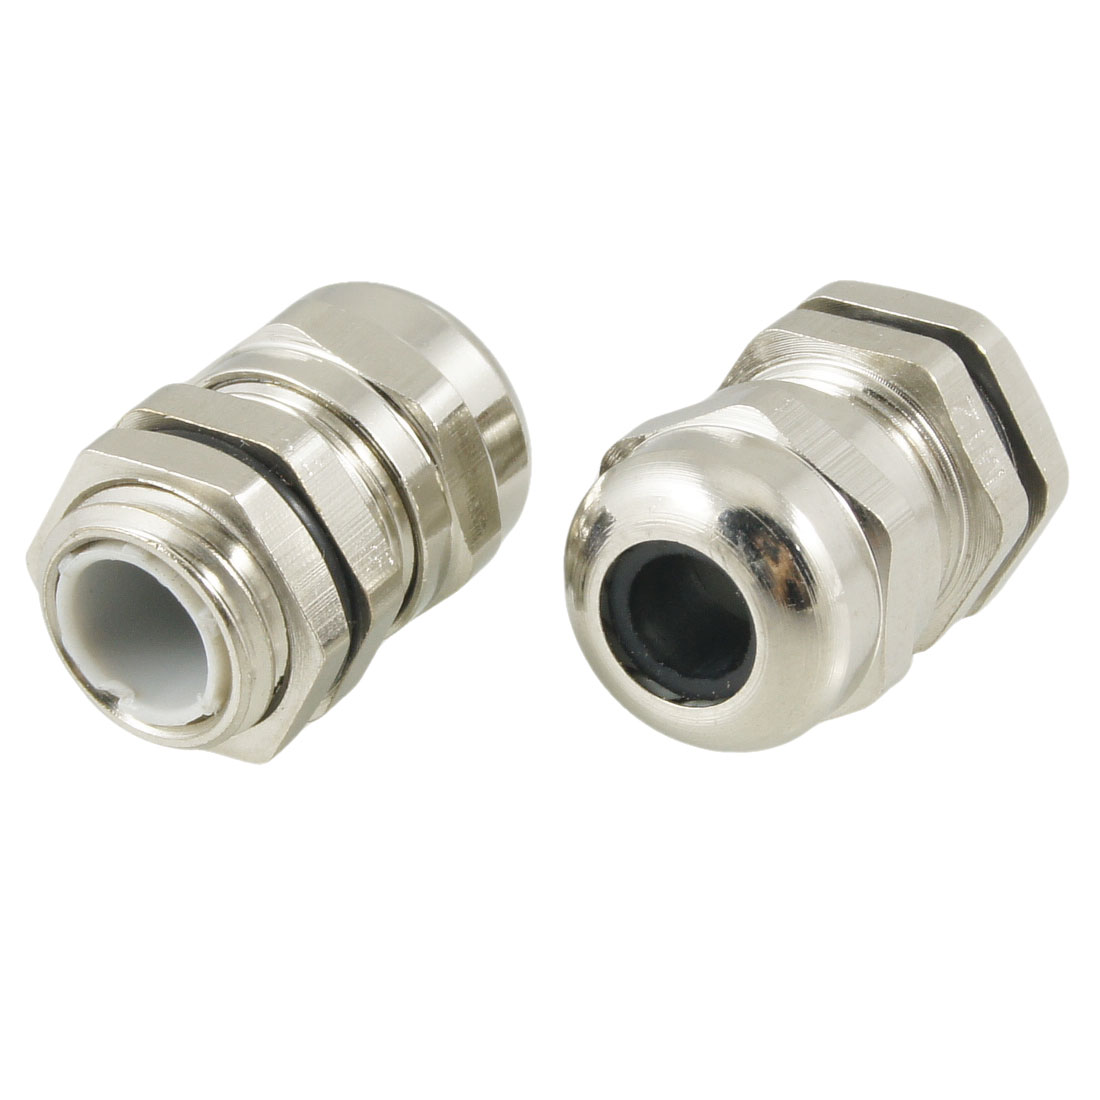 2 Pcs M12 3.0-6.5mm Stainless Steel Waterproof Joint Cable Gland